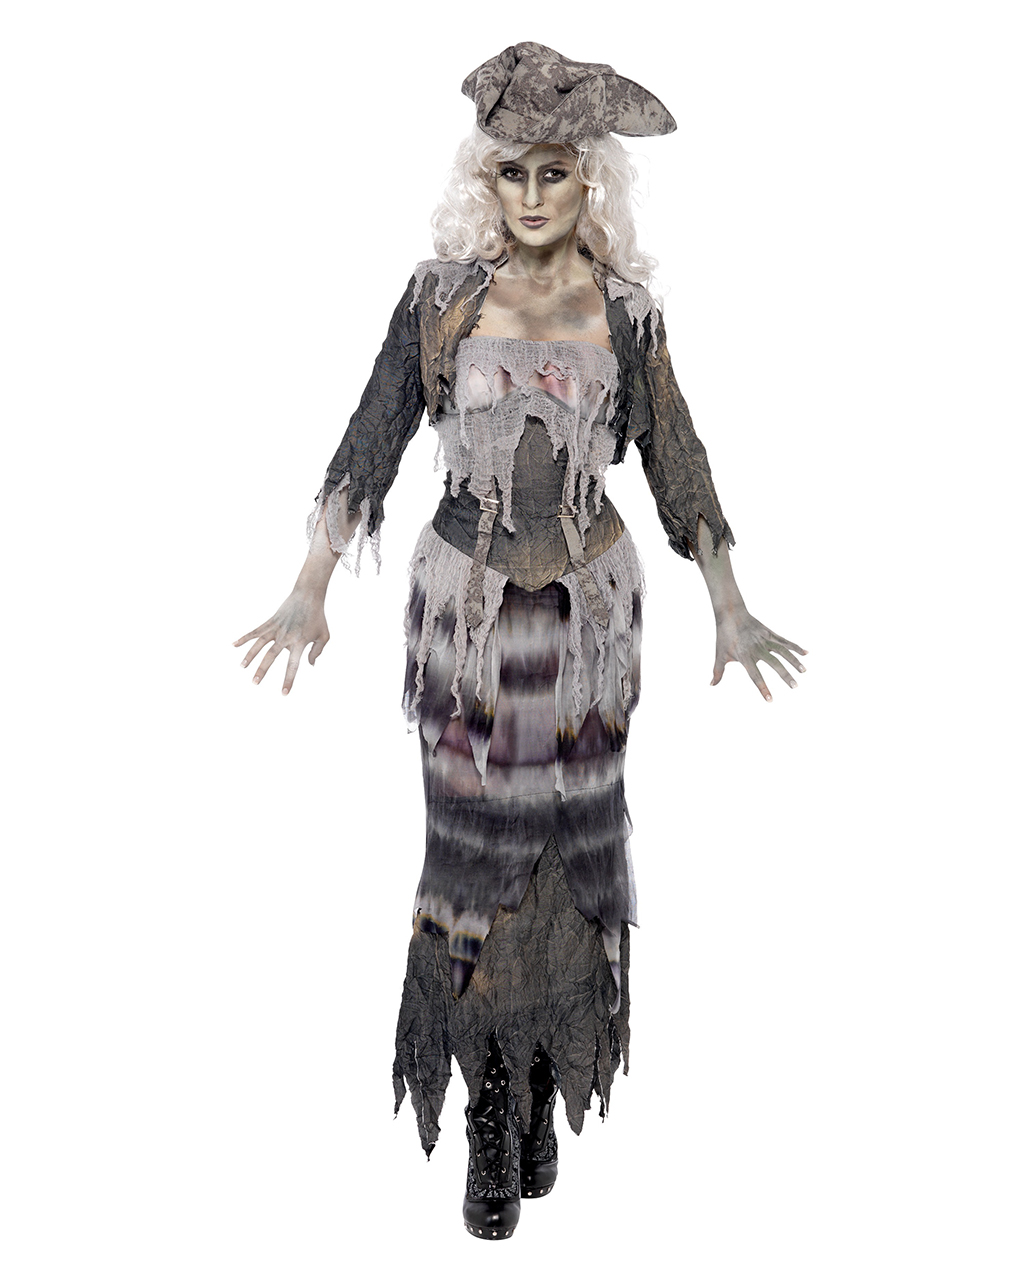 Ghoulina Pirate Ghost Ship Buy Sexy Zombie Costumes Horror Shop Com